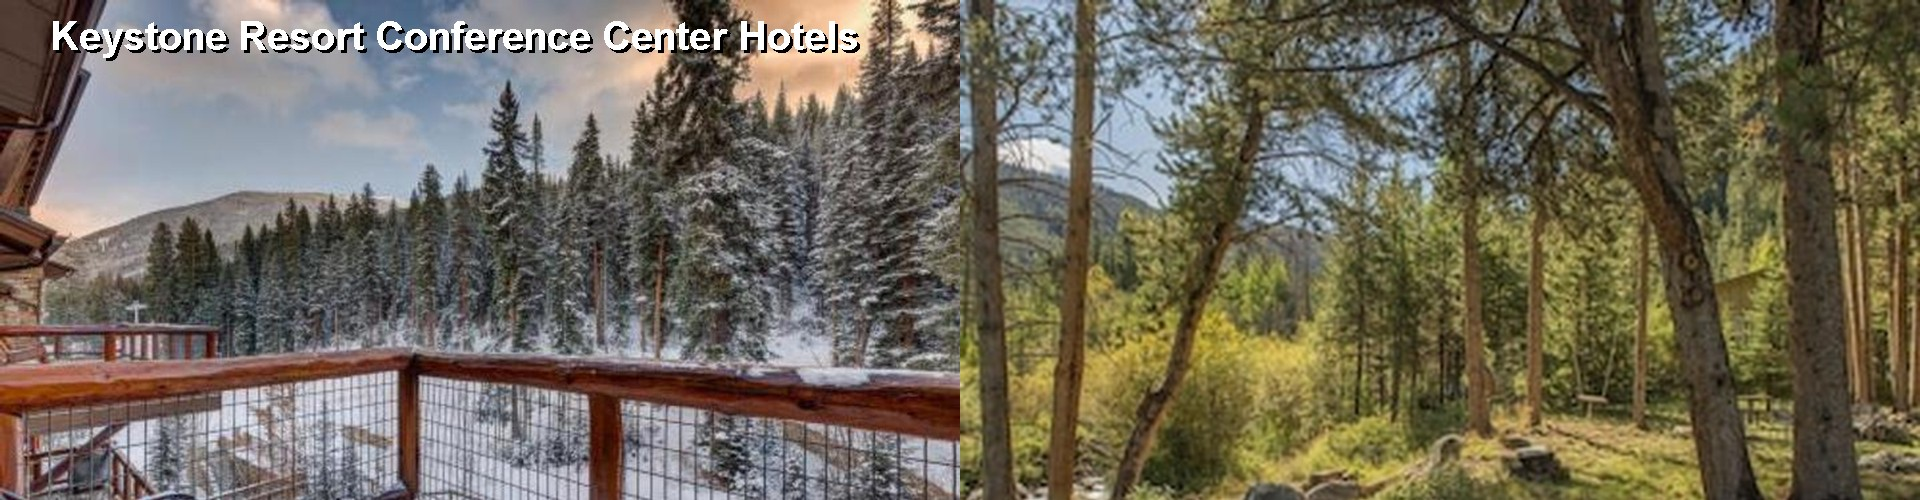 5 Best Hotels near Keystone Resort Conference Center